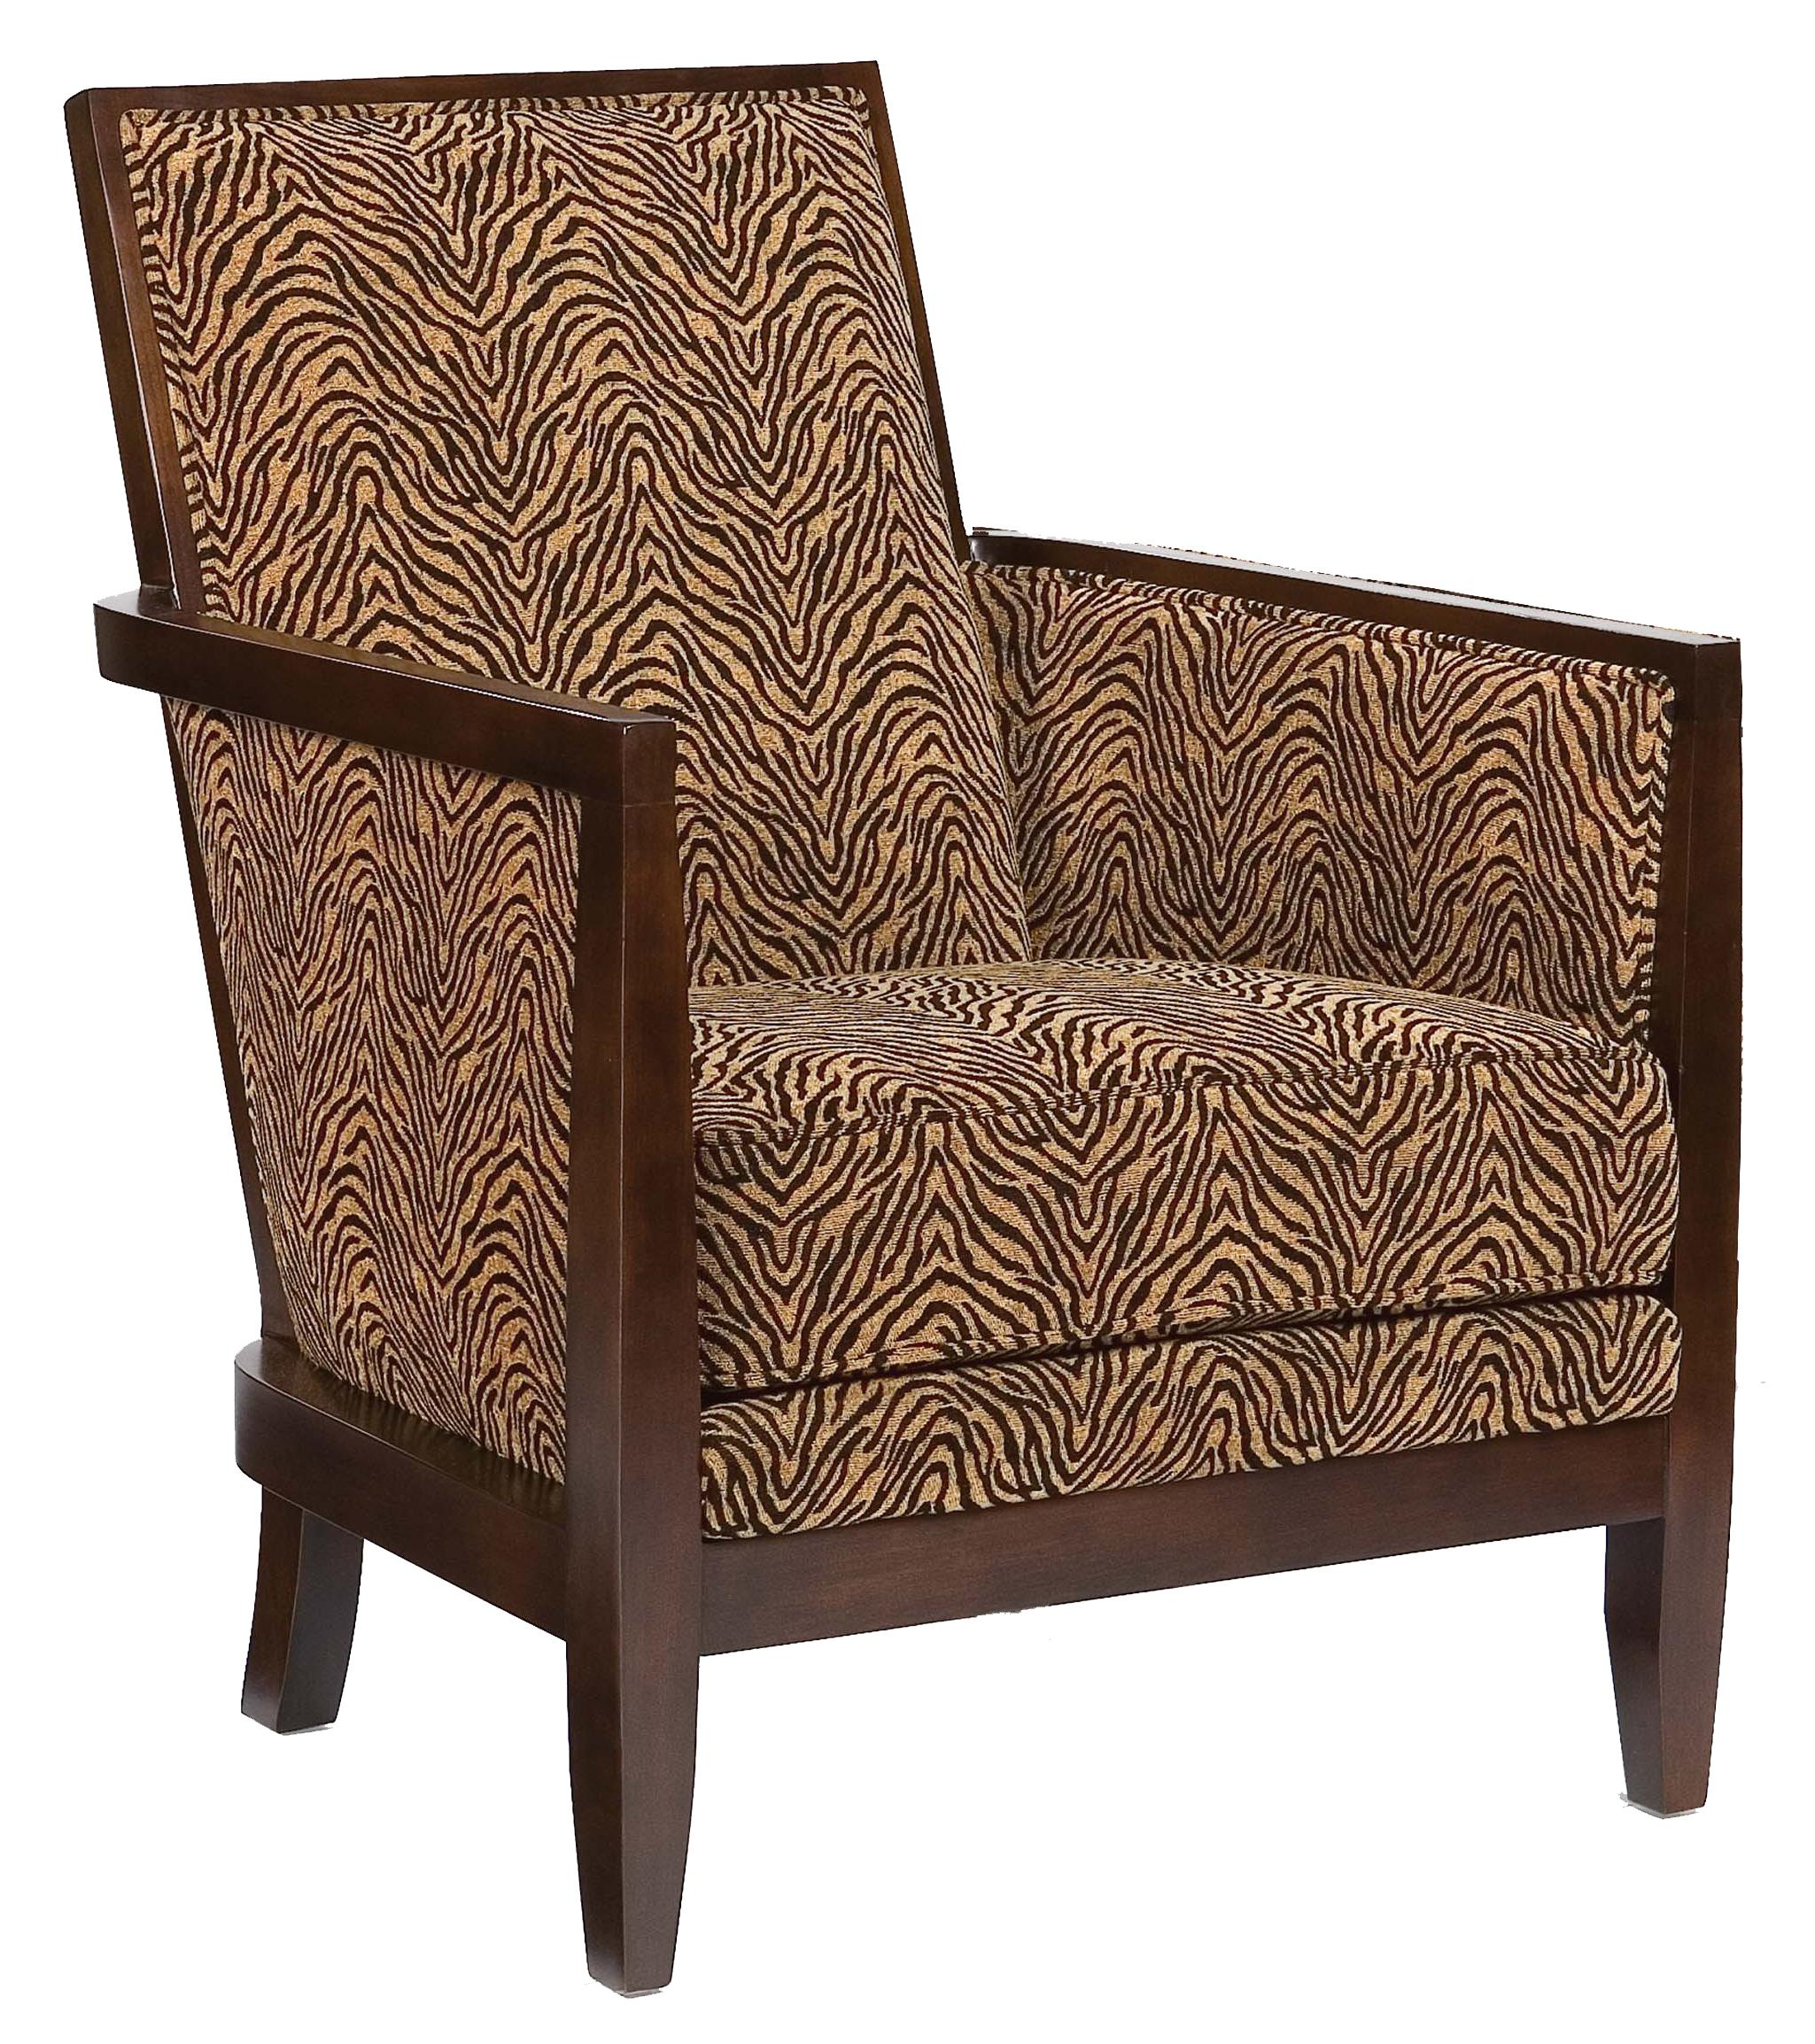 Geometric Exposed-Wood Chair